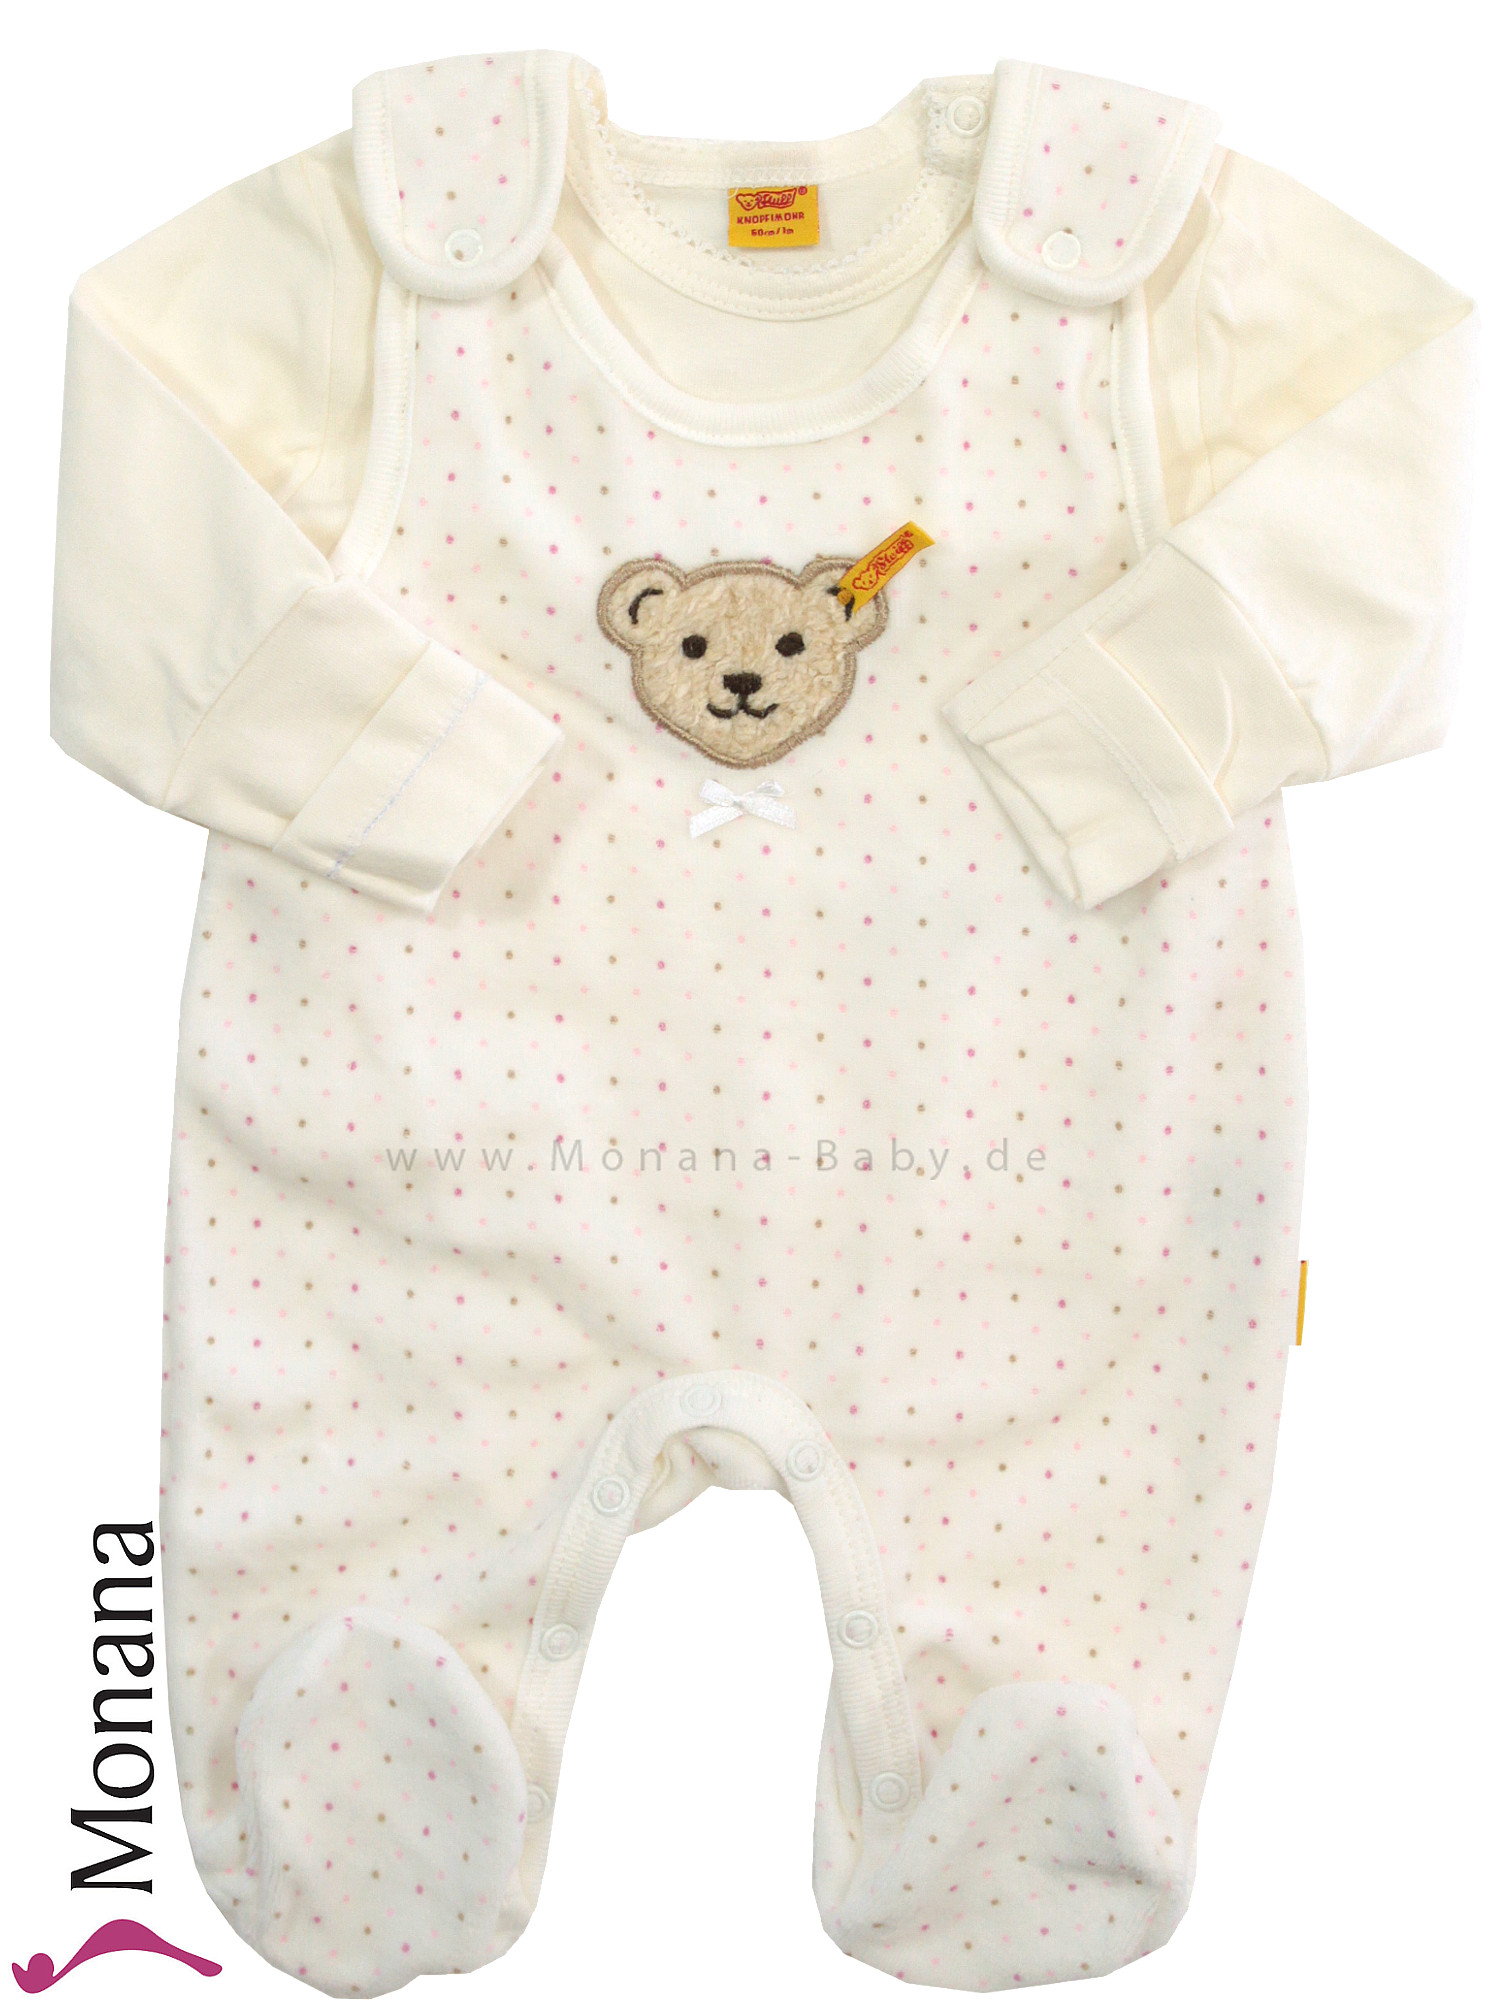 Steiff Collection Baby-Strampler ecru & Baby-Shirt Little Teddybear<br>Größe: 62